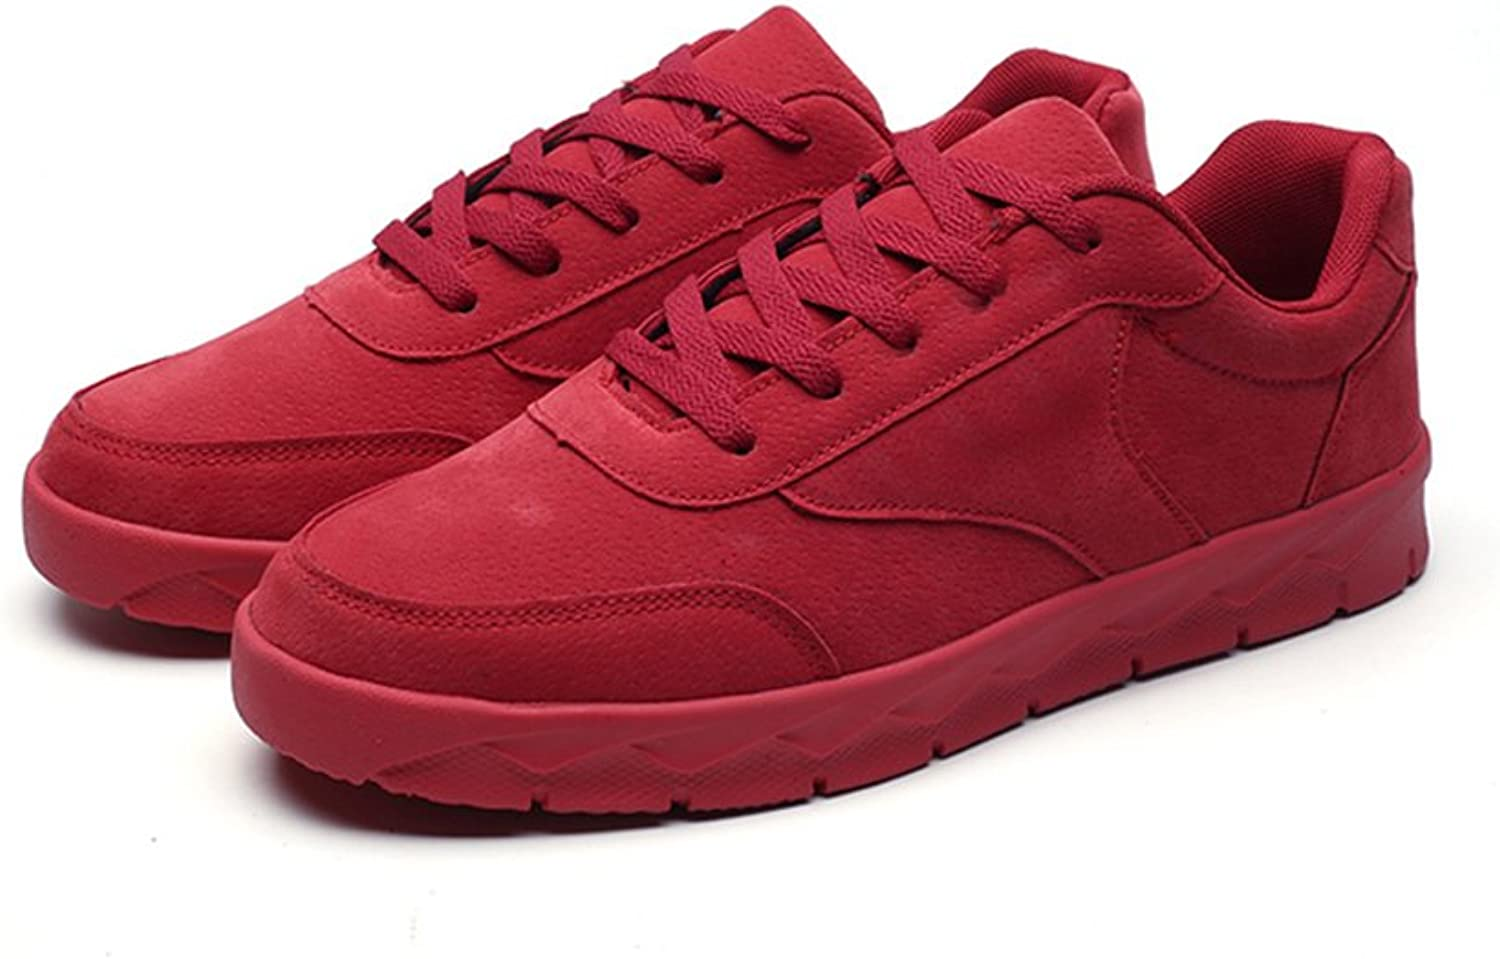 YUBINxiuxianxie Spring Summer Casual shoes Men's shoes Breathable shoes shoes Men's shoes Korean Version Of The Lazy Increase Sports Leisure Low Help Students shoes (color   RED, Size   39)